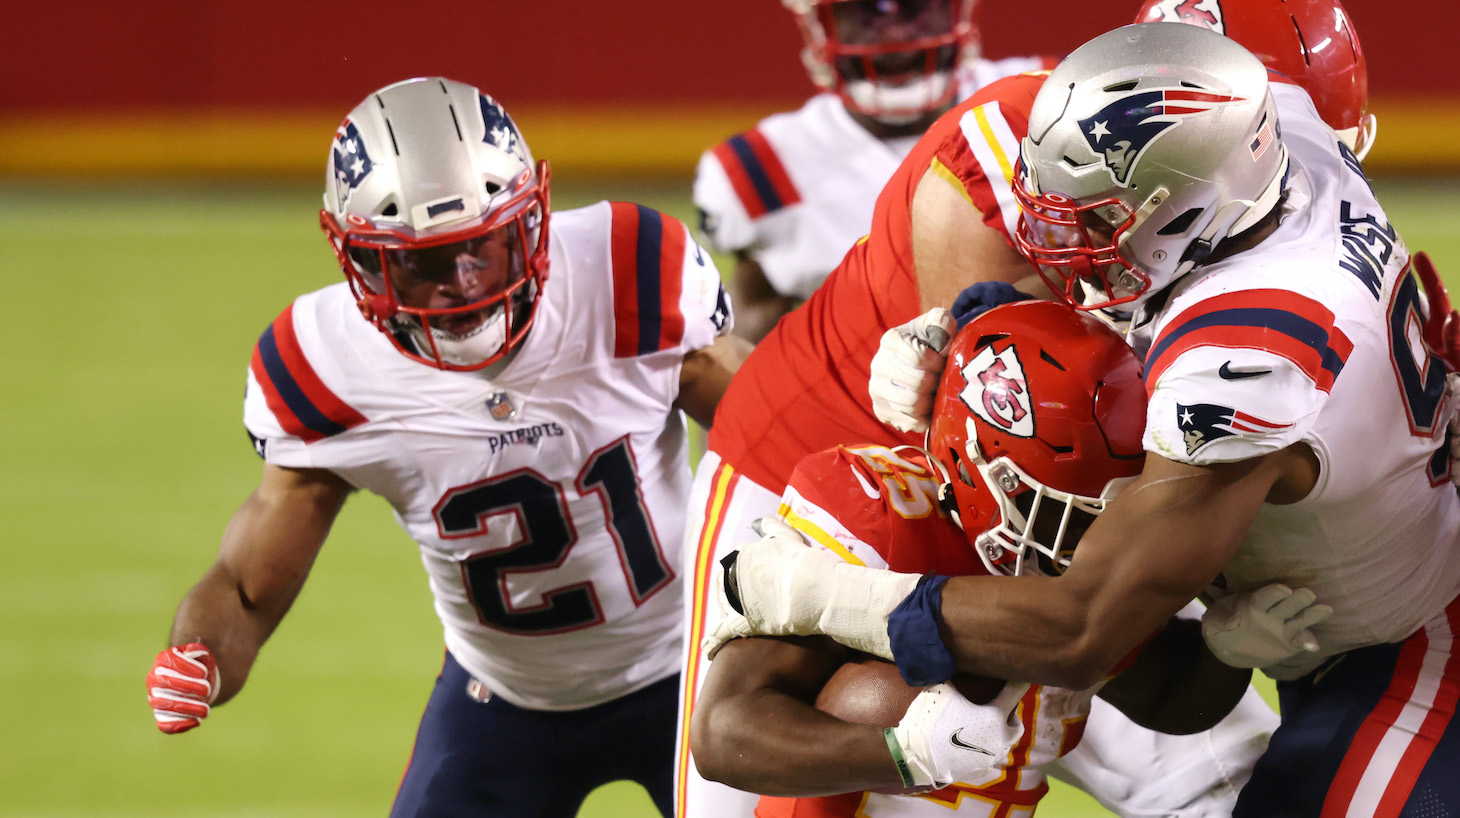 KANSAS CITY, MISSOURI - OCTOBER 05: Deatrich Wise #91 of the New England Patriots tackles Clyde Edwards-Helaire #25 of the Kansas City Chiefs during the second half at Arrowhead Stadium on October 05, 2020 in Kansas City, Missouri. (Photo by Jamie Squire/Getty Images)